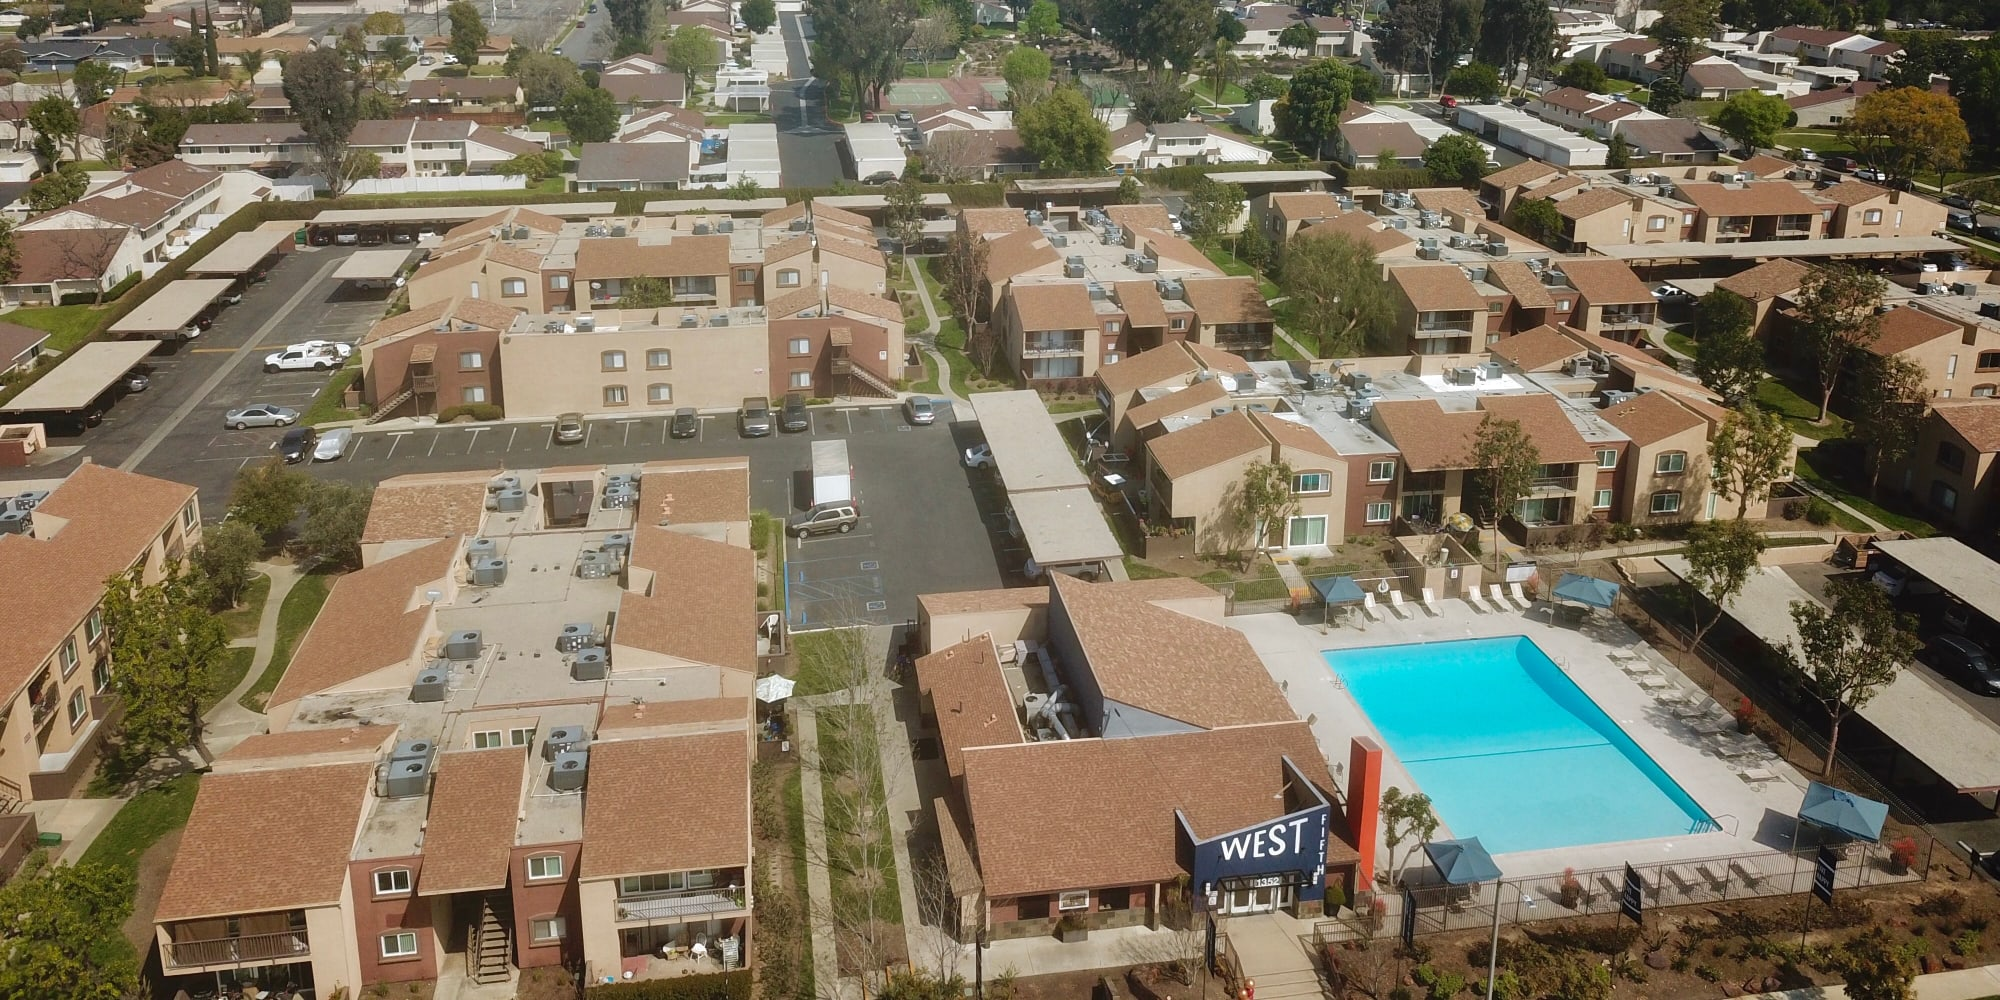 Aerial view of swimming pool at West Fifth Apartments in Ontario, California